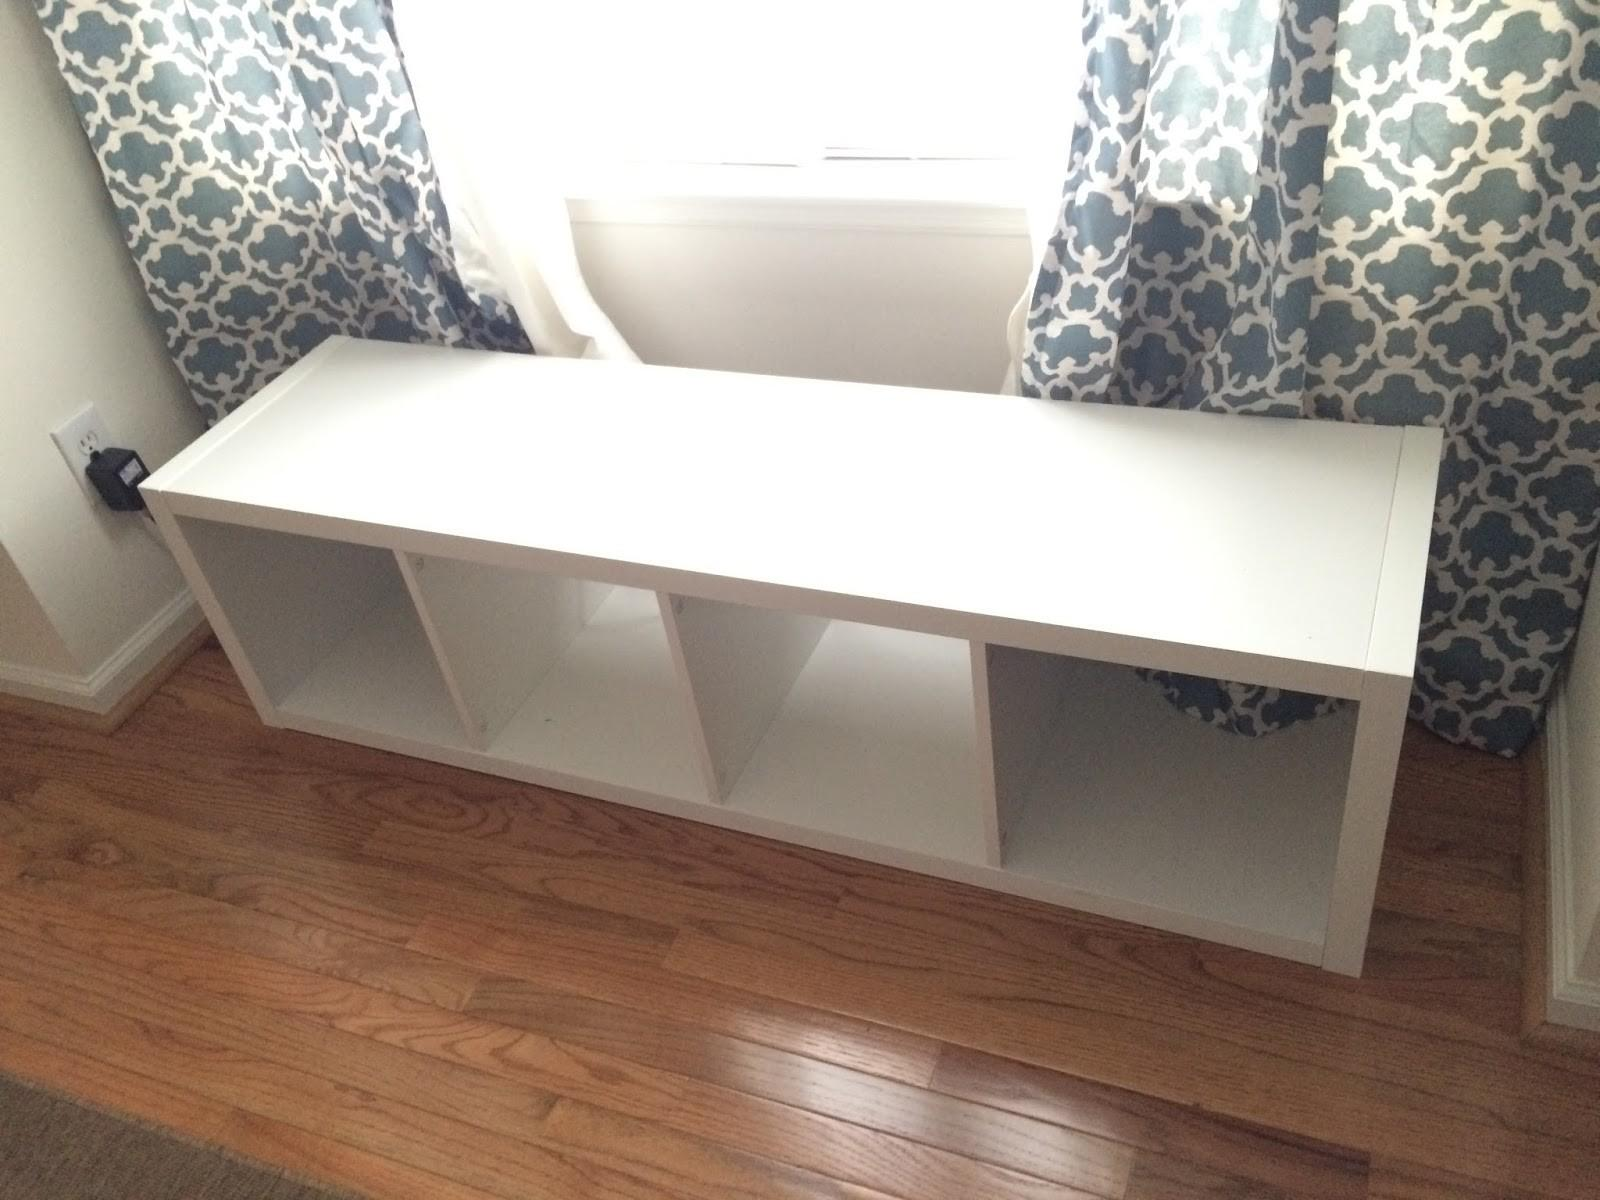 Adorable Mess Diy Kallax Storage Bench